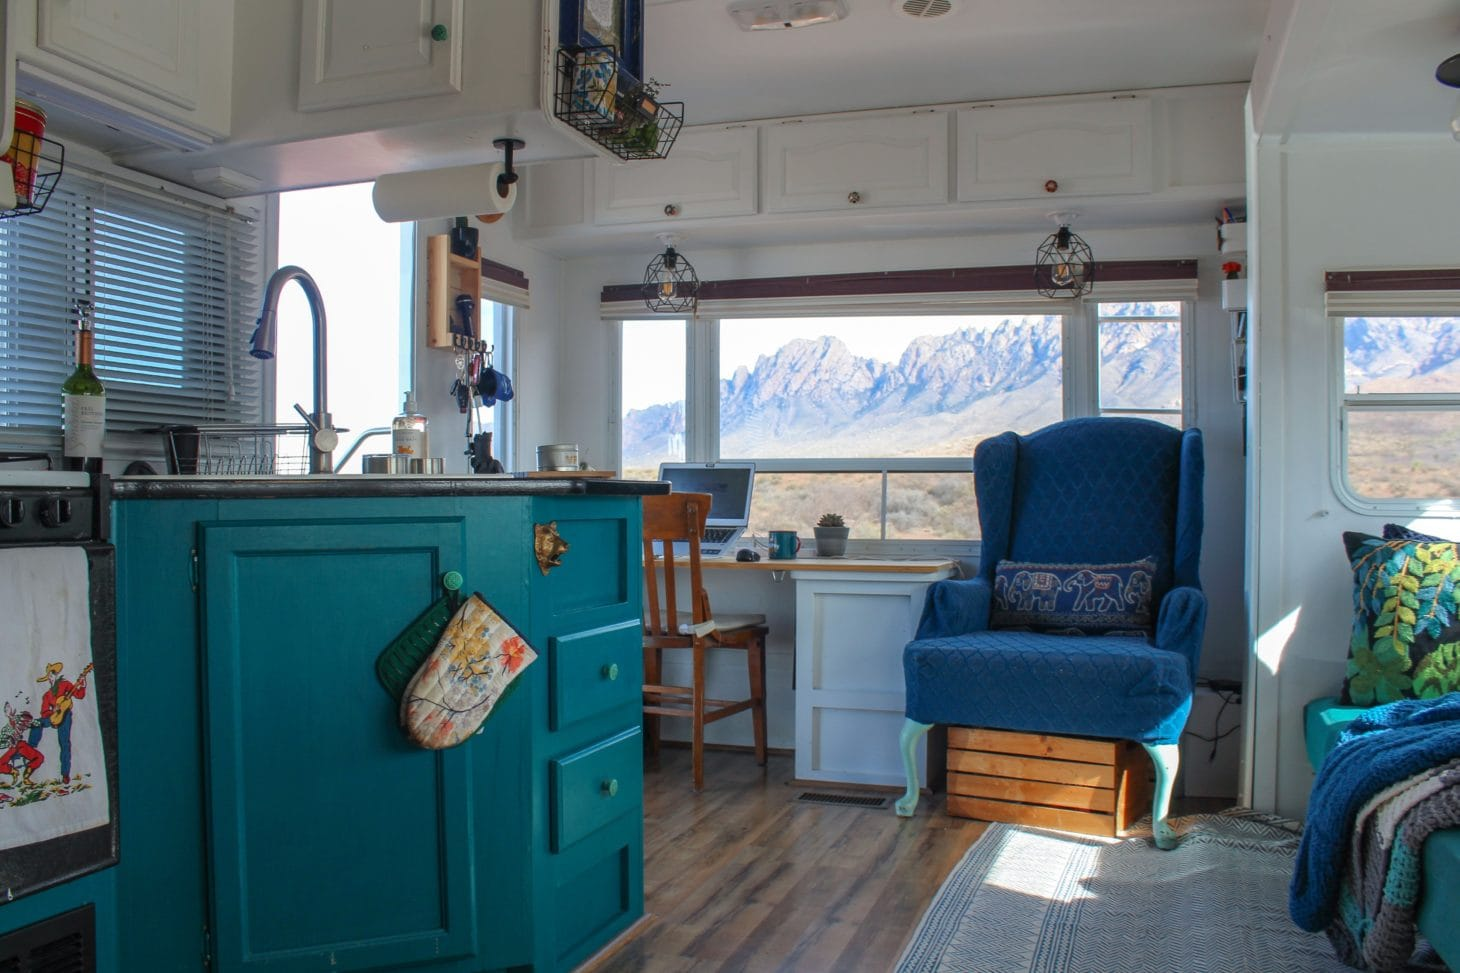 Interior of RV renovated with kitchen and office space